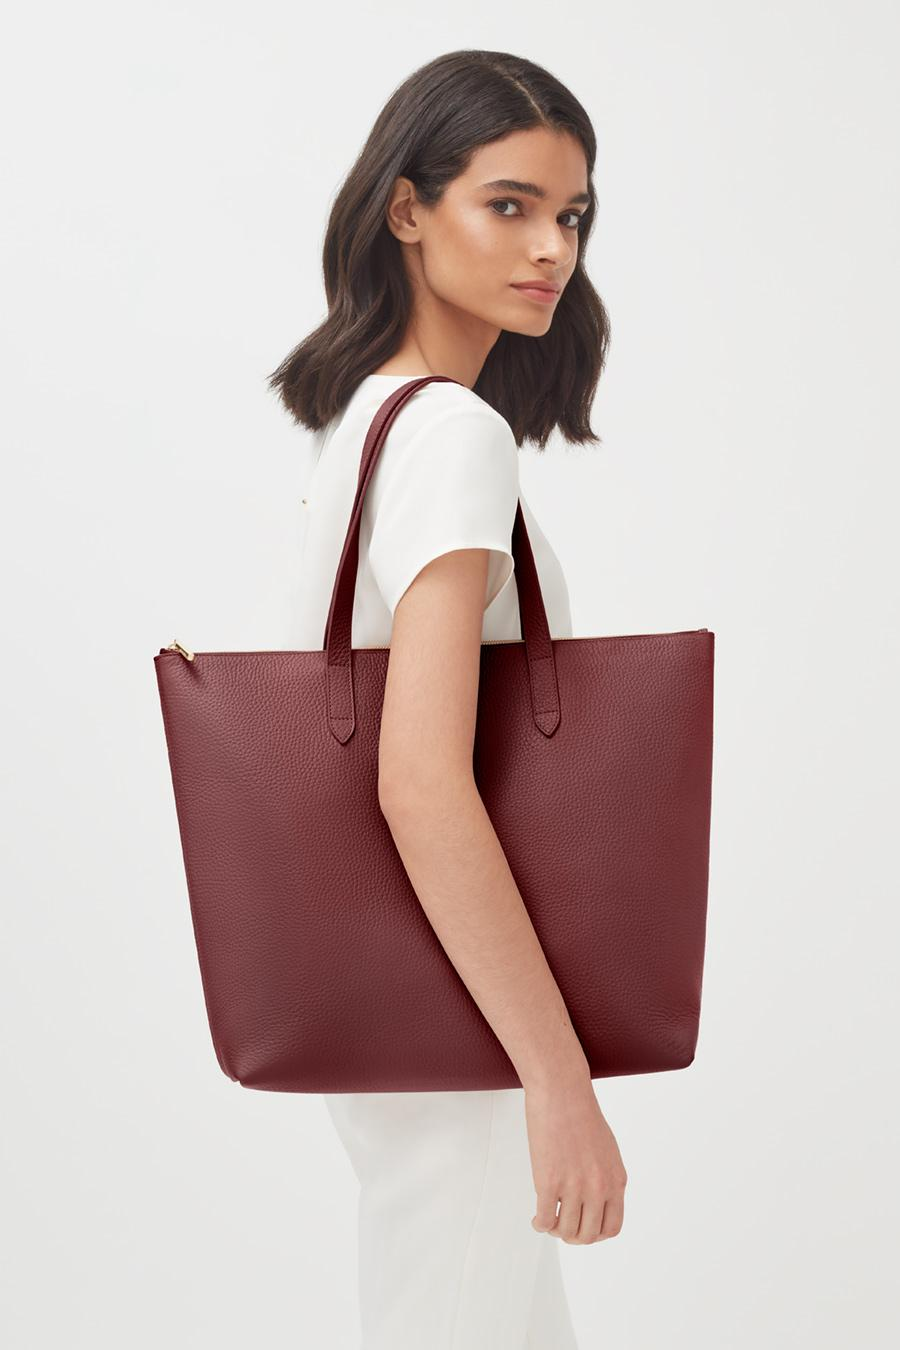 Women's Classic Leather Zipper Tote Bag in Merlot Painted | Pebbled Leather by Cuyana 4